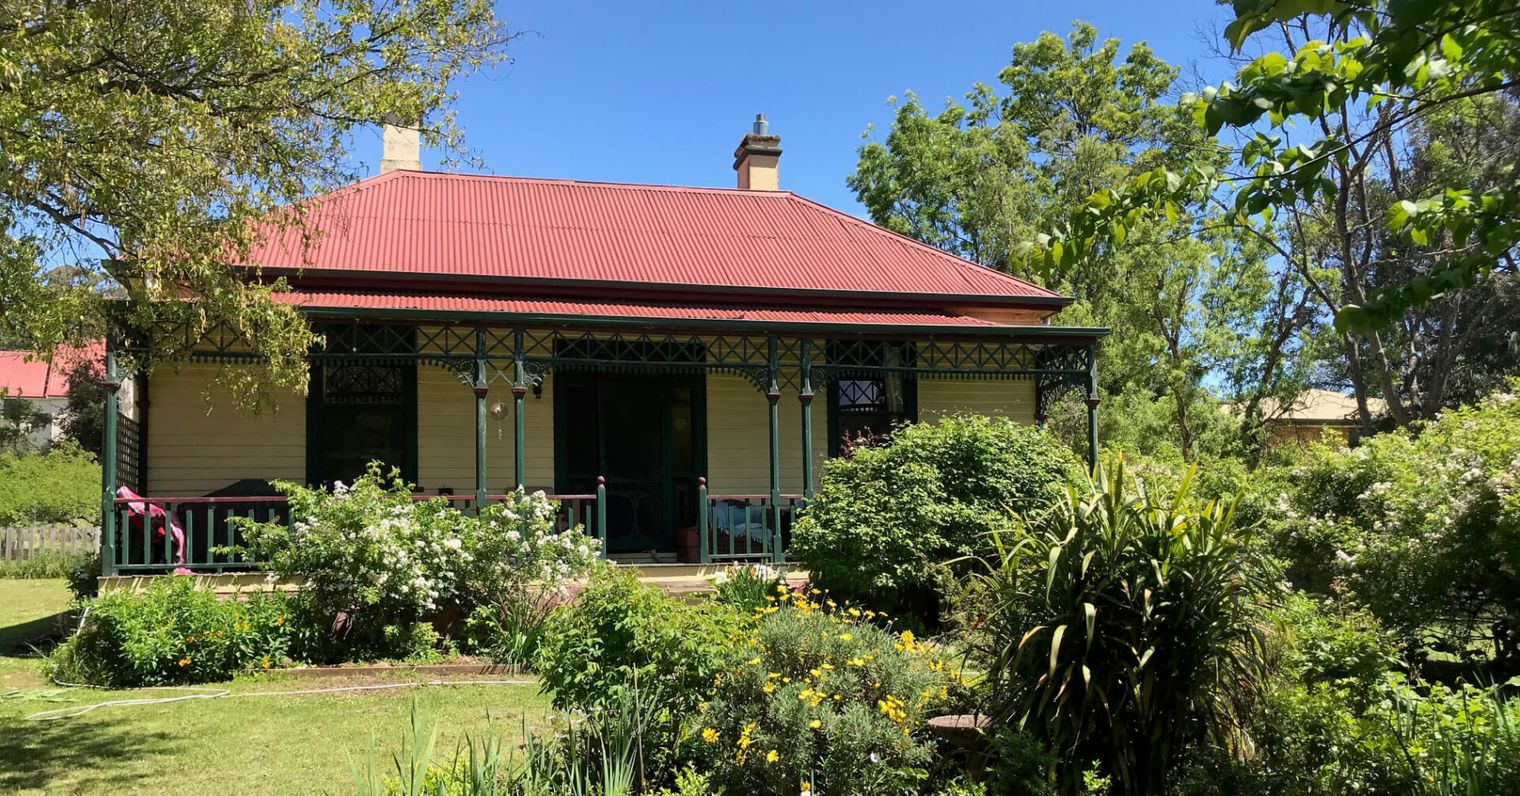 The great Australian compromise: why many struggle to buy their dream home